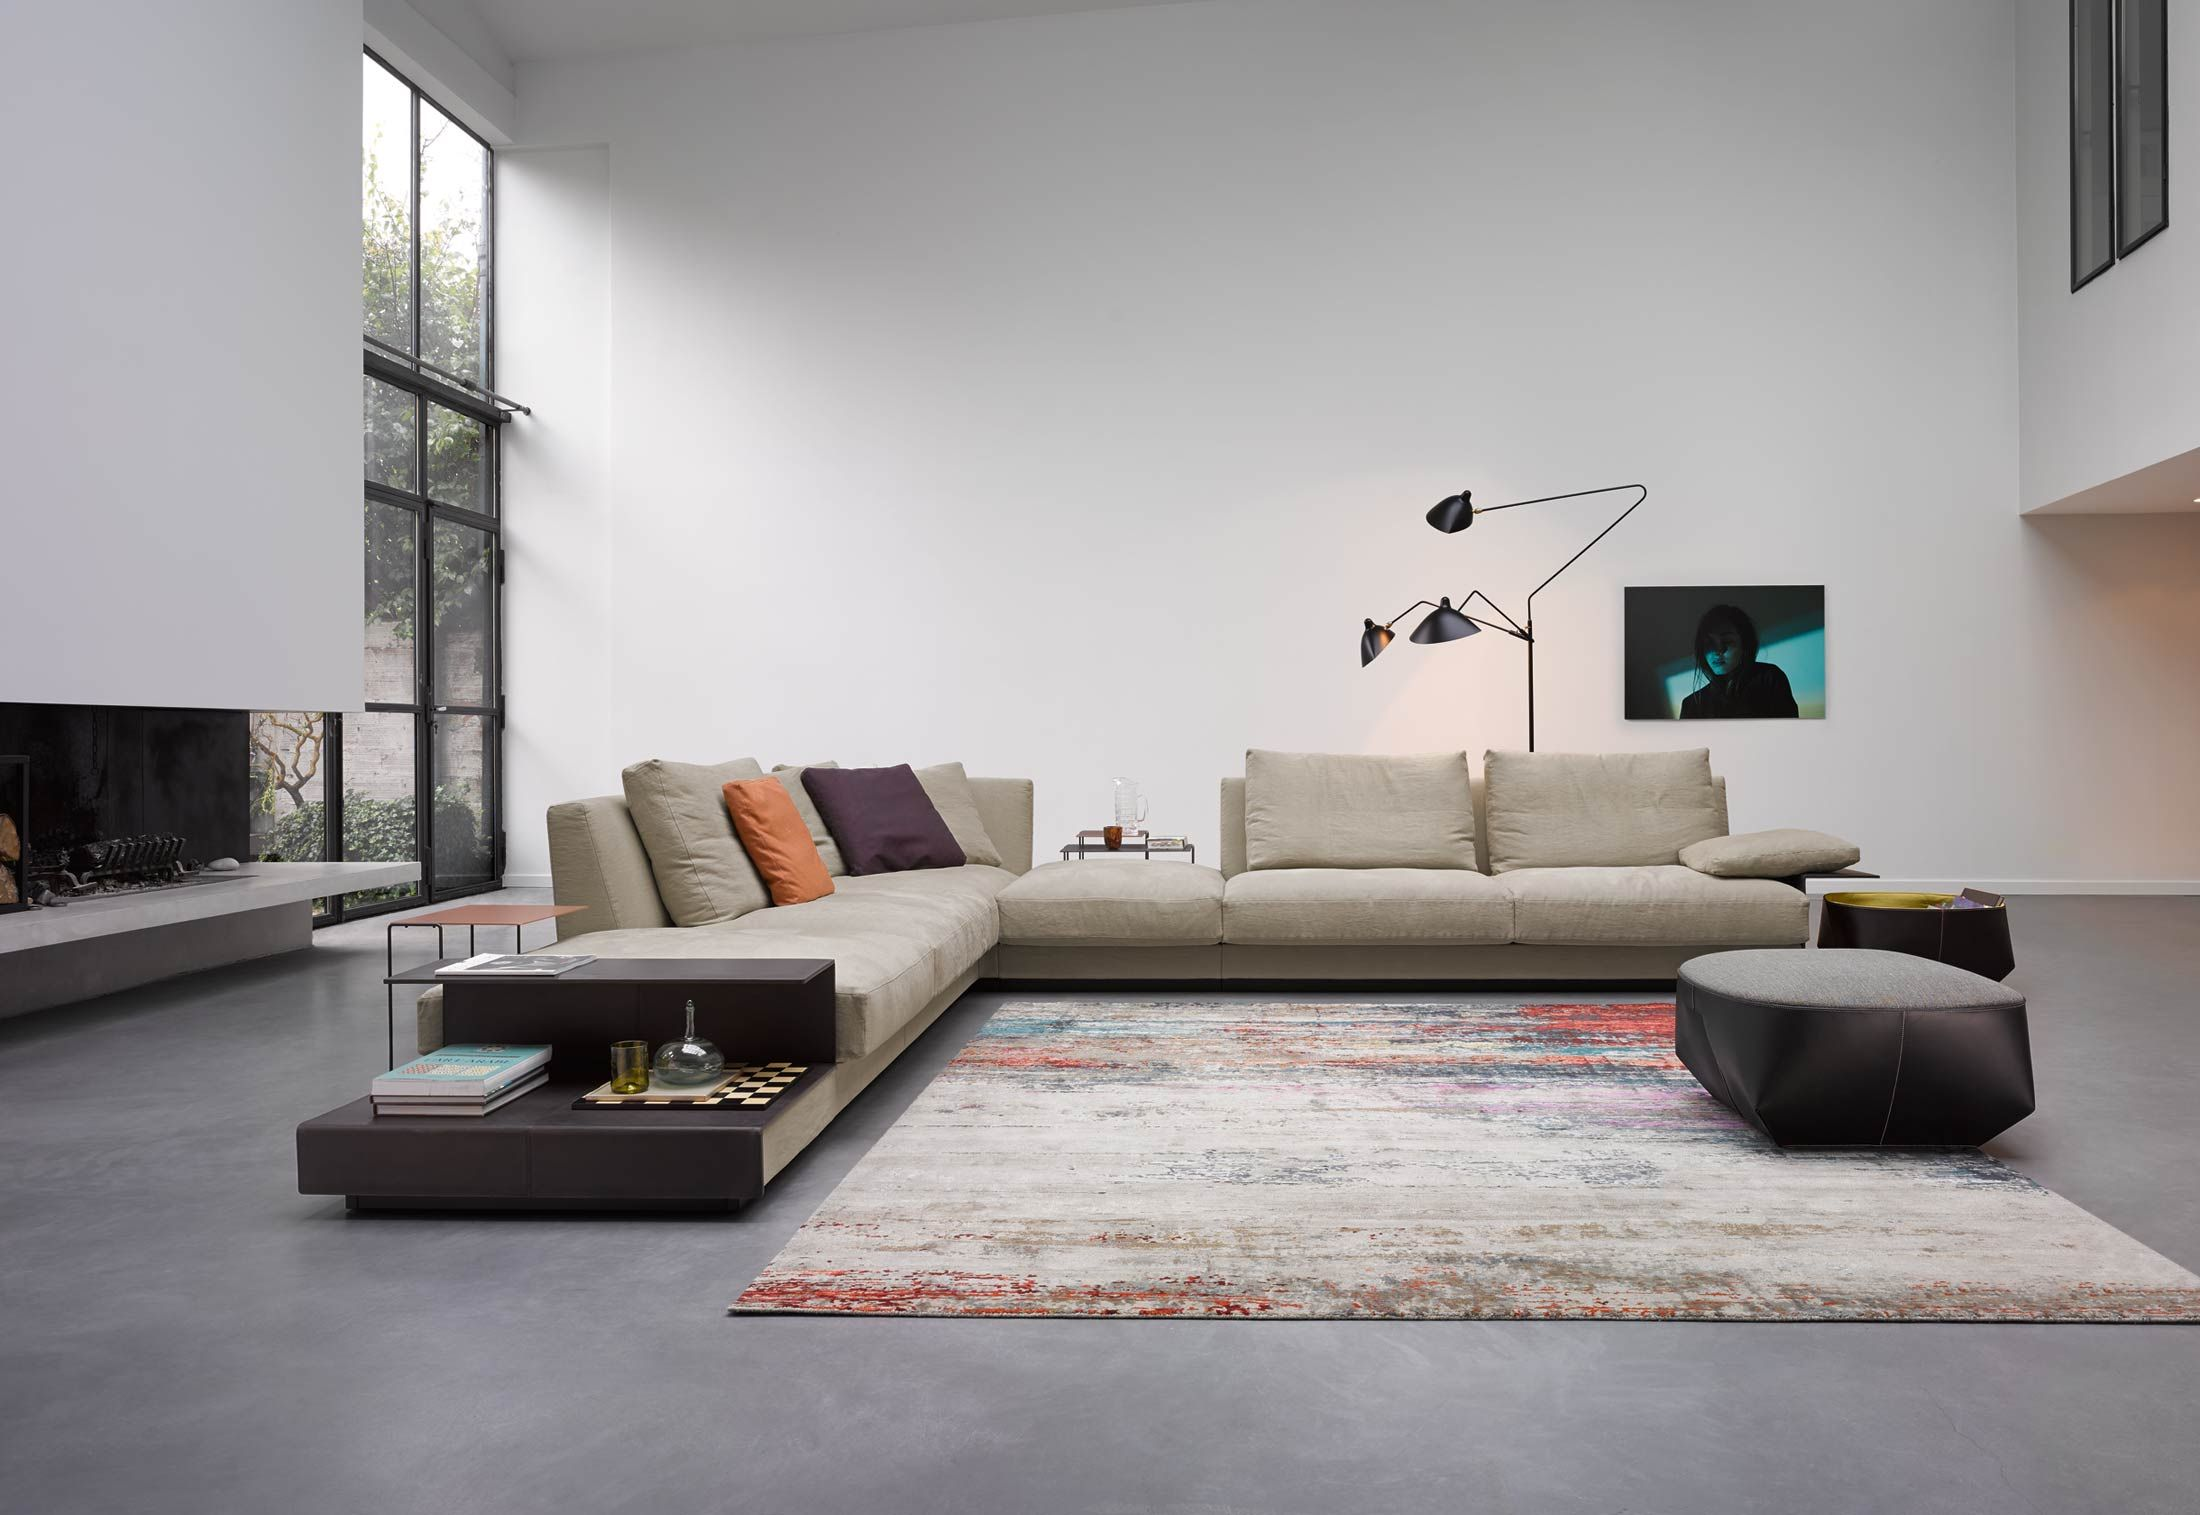 Grand Suite By Walter Knoll Sofas Design At Stylepark Knoll Furniture Walter Knoll Sofa Contemporary Furniture Design